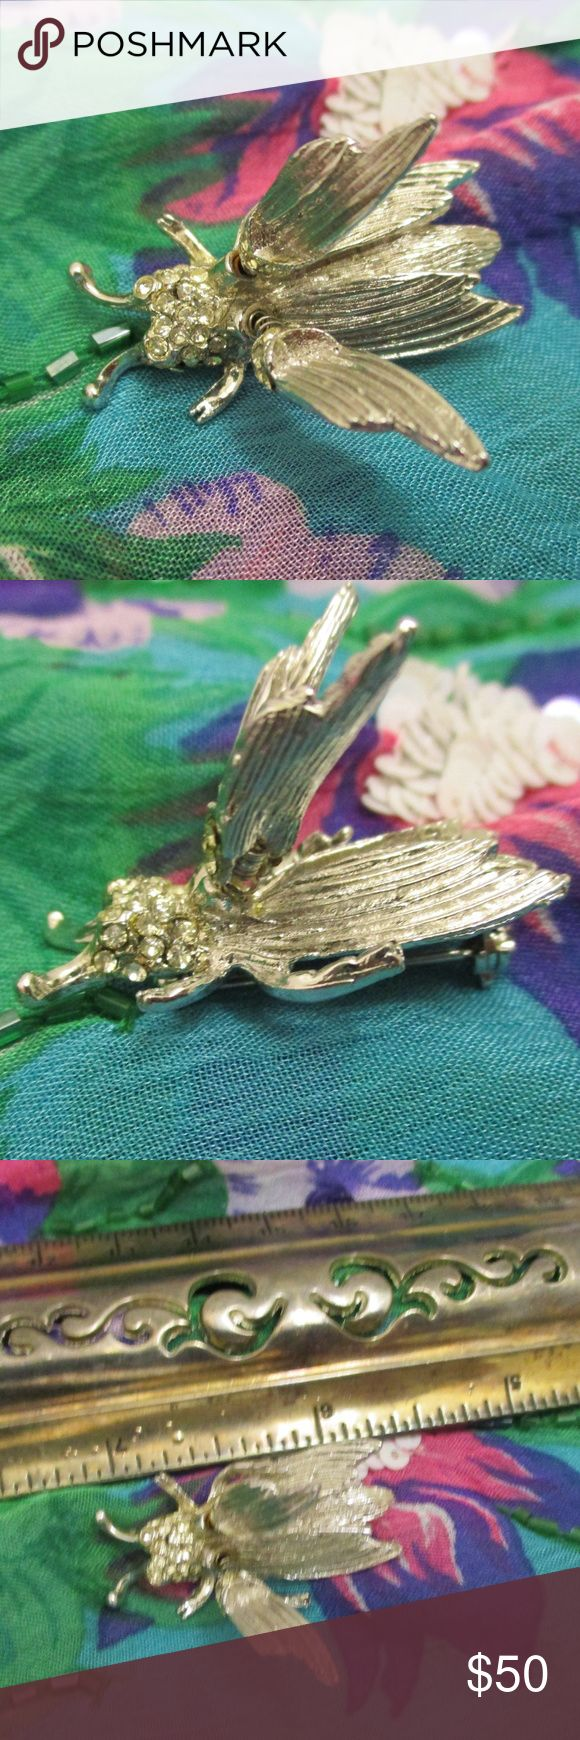 """HATTIE CARNEGIE Insect Bug Trembler Brooch Vintage Presenting a signed designer silver and rhinestone en Tremblant winged bug brooch. This enchanting higly detailed 1960s Hattie Carnegie signed bug trembler is constructed of silver tone metal with faceted clear pave handset rhinestones on head and across top of wings.  Top wings are set on springs causing the wings to jiggle and bounce with every movement ~ thus the term TREMBLER or en Tremblant. 1 1/2"""" x 3/4"""" x 1"""" deep. Secure rollover…"""